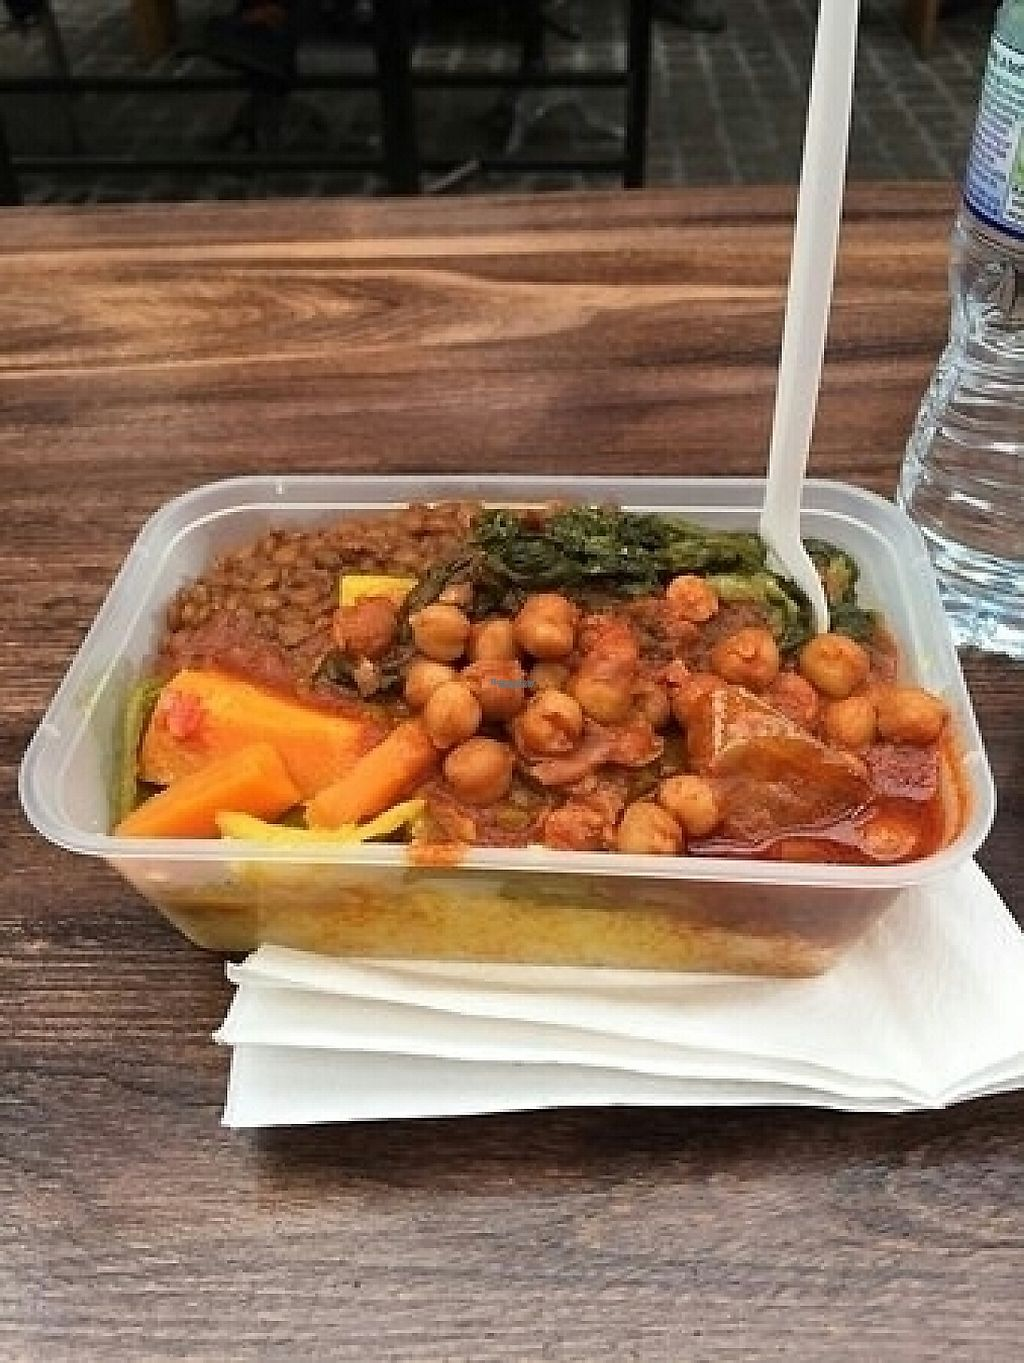 """Photo of Ethiopian Vegetarian Food Stall  by <a href=""""/members/profile/VictorHugoLimachi"""">VictorHugoLimachi</a> <br/>Mixed box  <br/> February 19, 2017  - <a href='/contact/abuse/image/59602/228337'>Report</a>"""